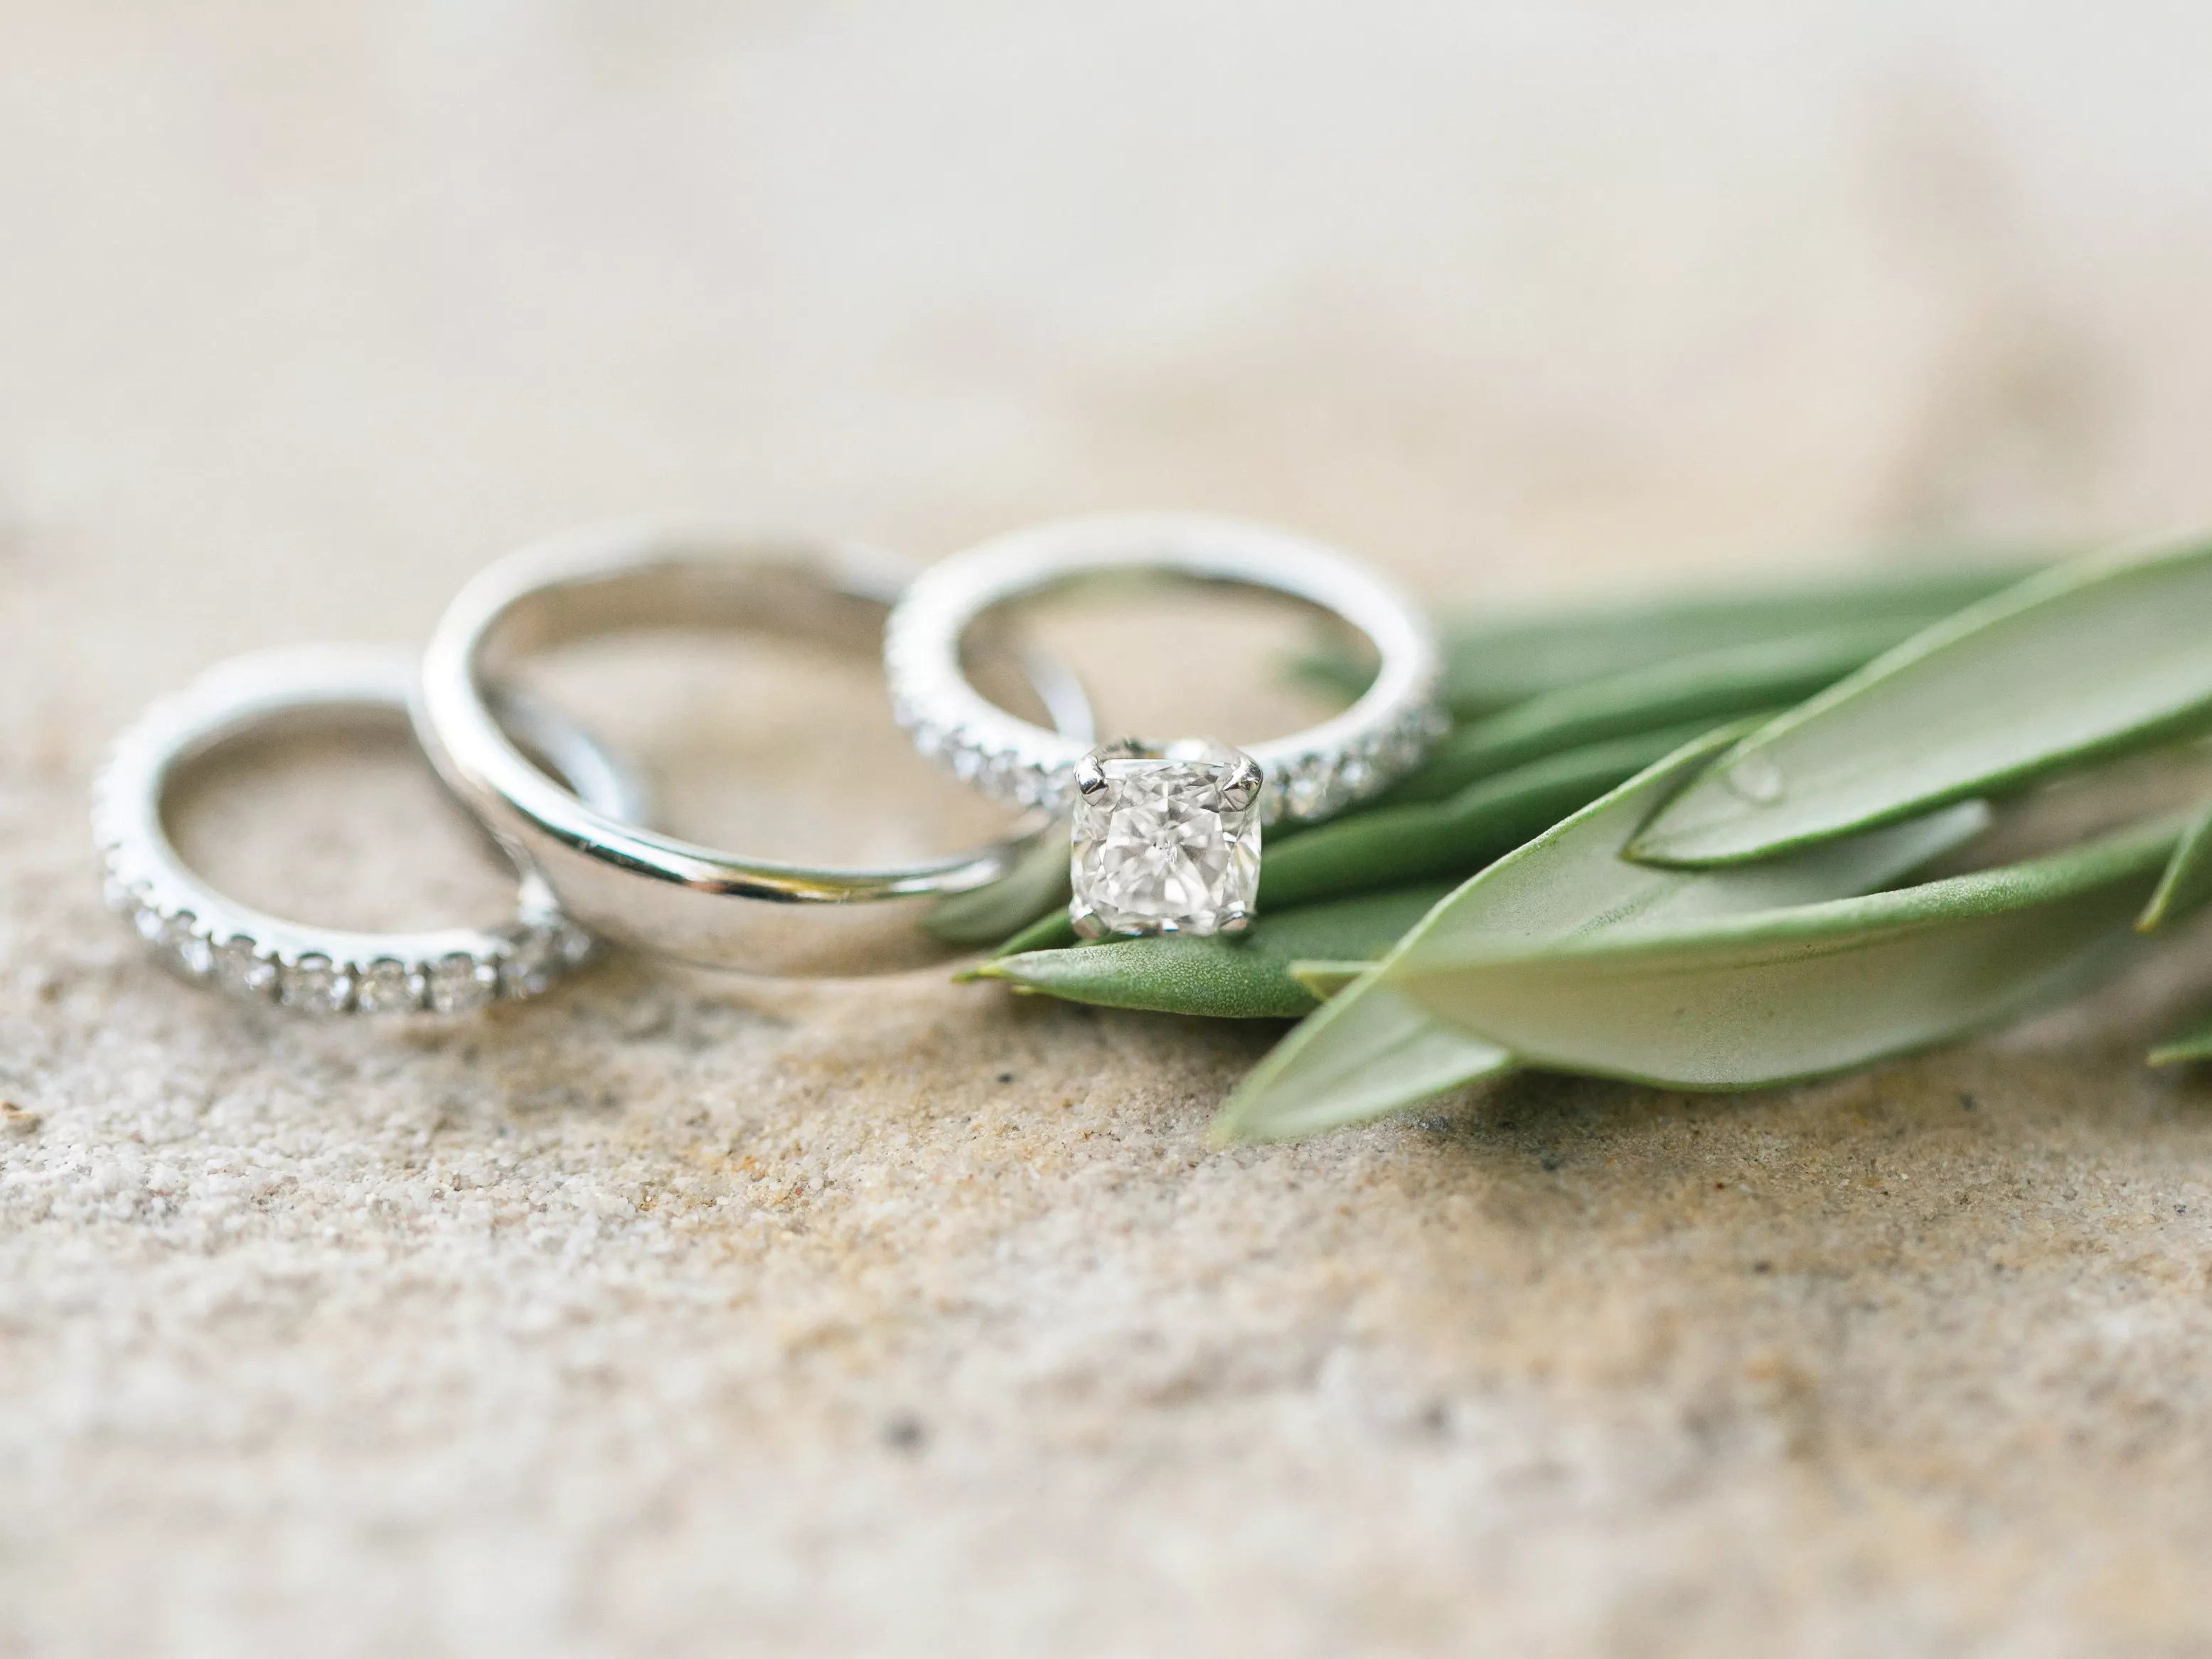 Weve Got the Answers To All Your Wedding Ring Questions